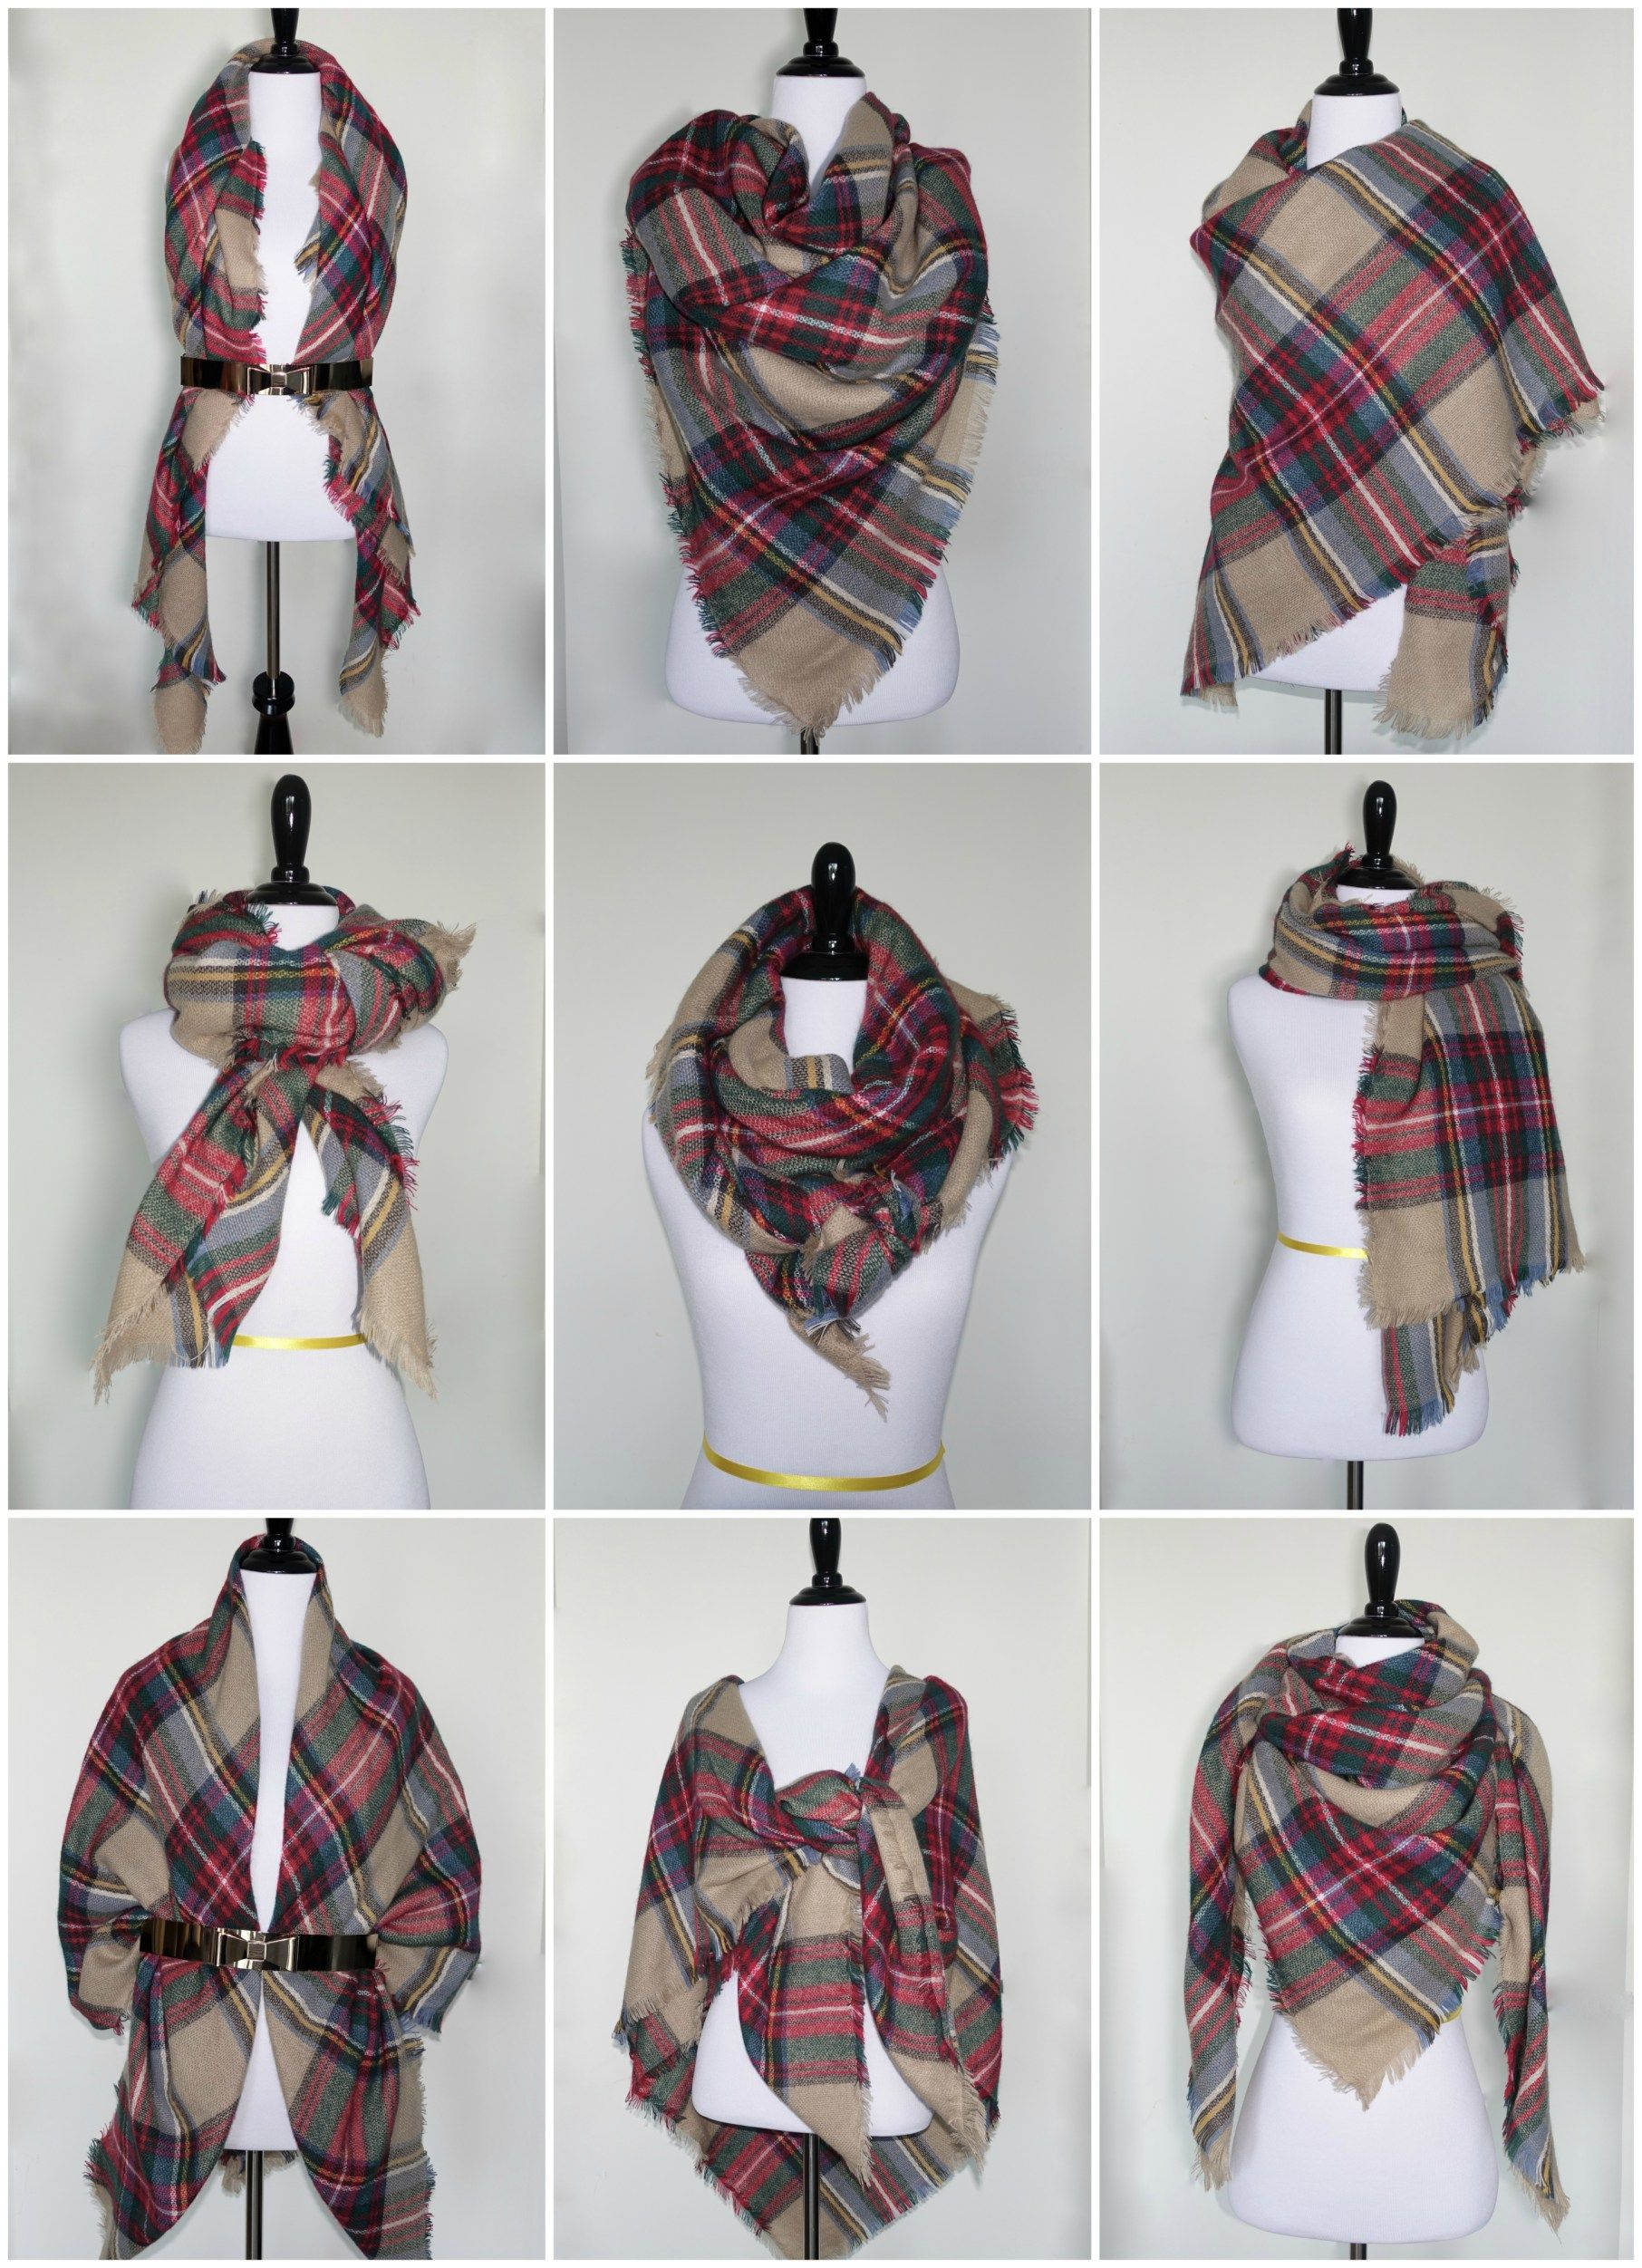 9 Ways to Style a Blanket Scarf for Petites  3ba1d0f438547